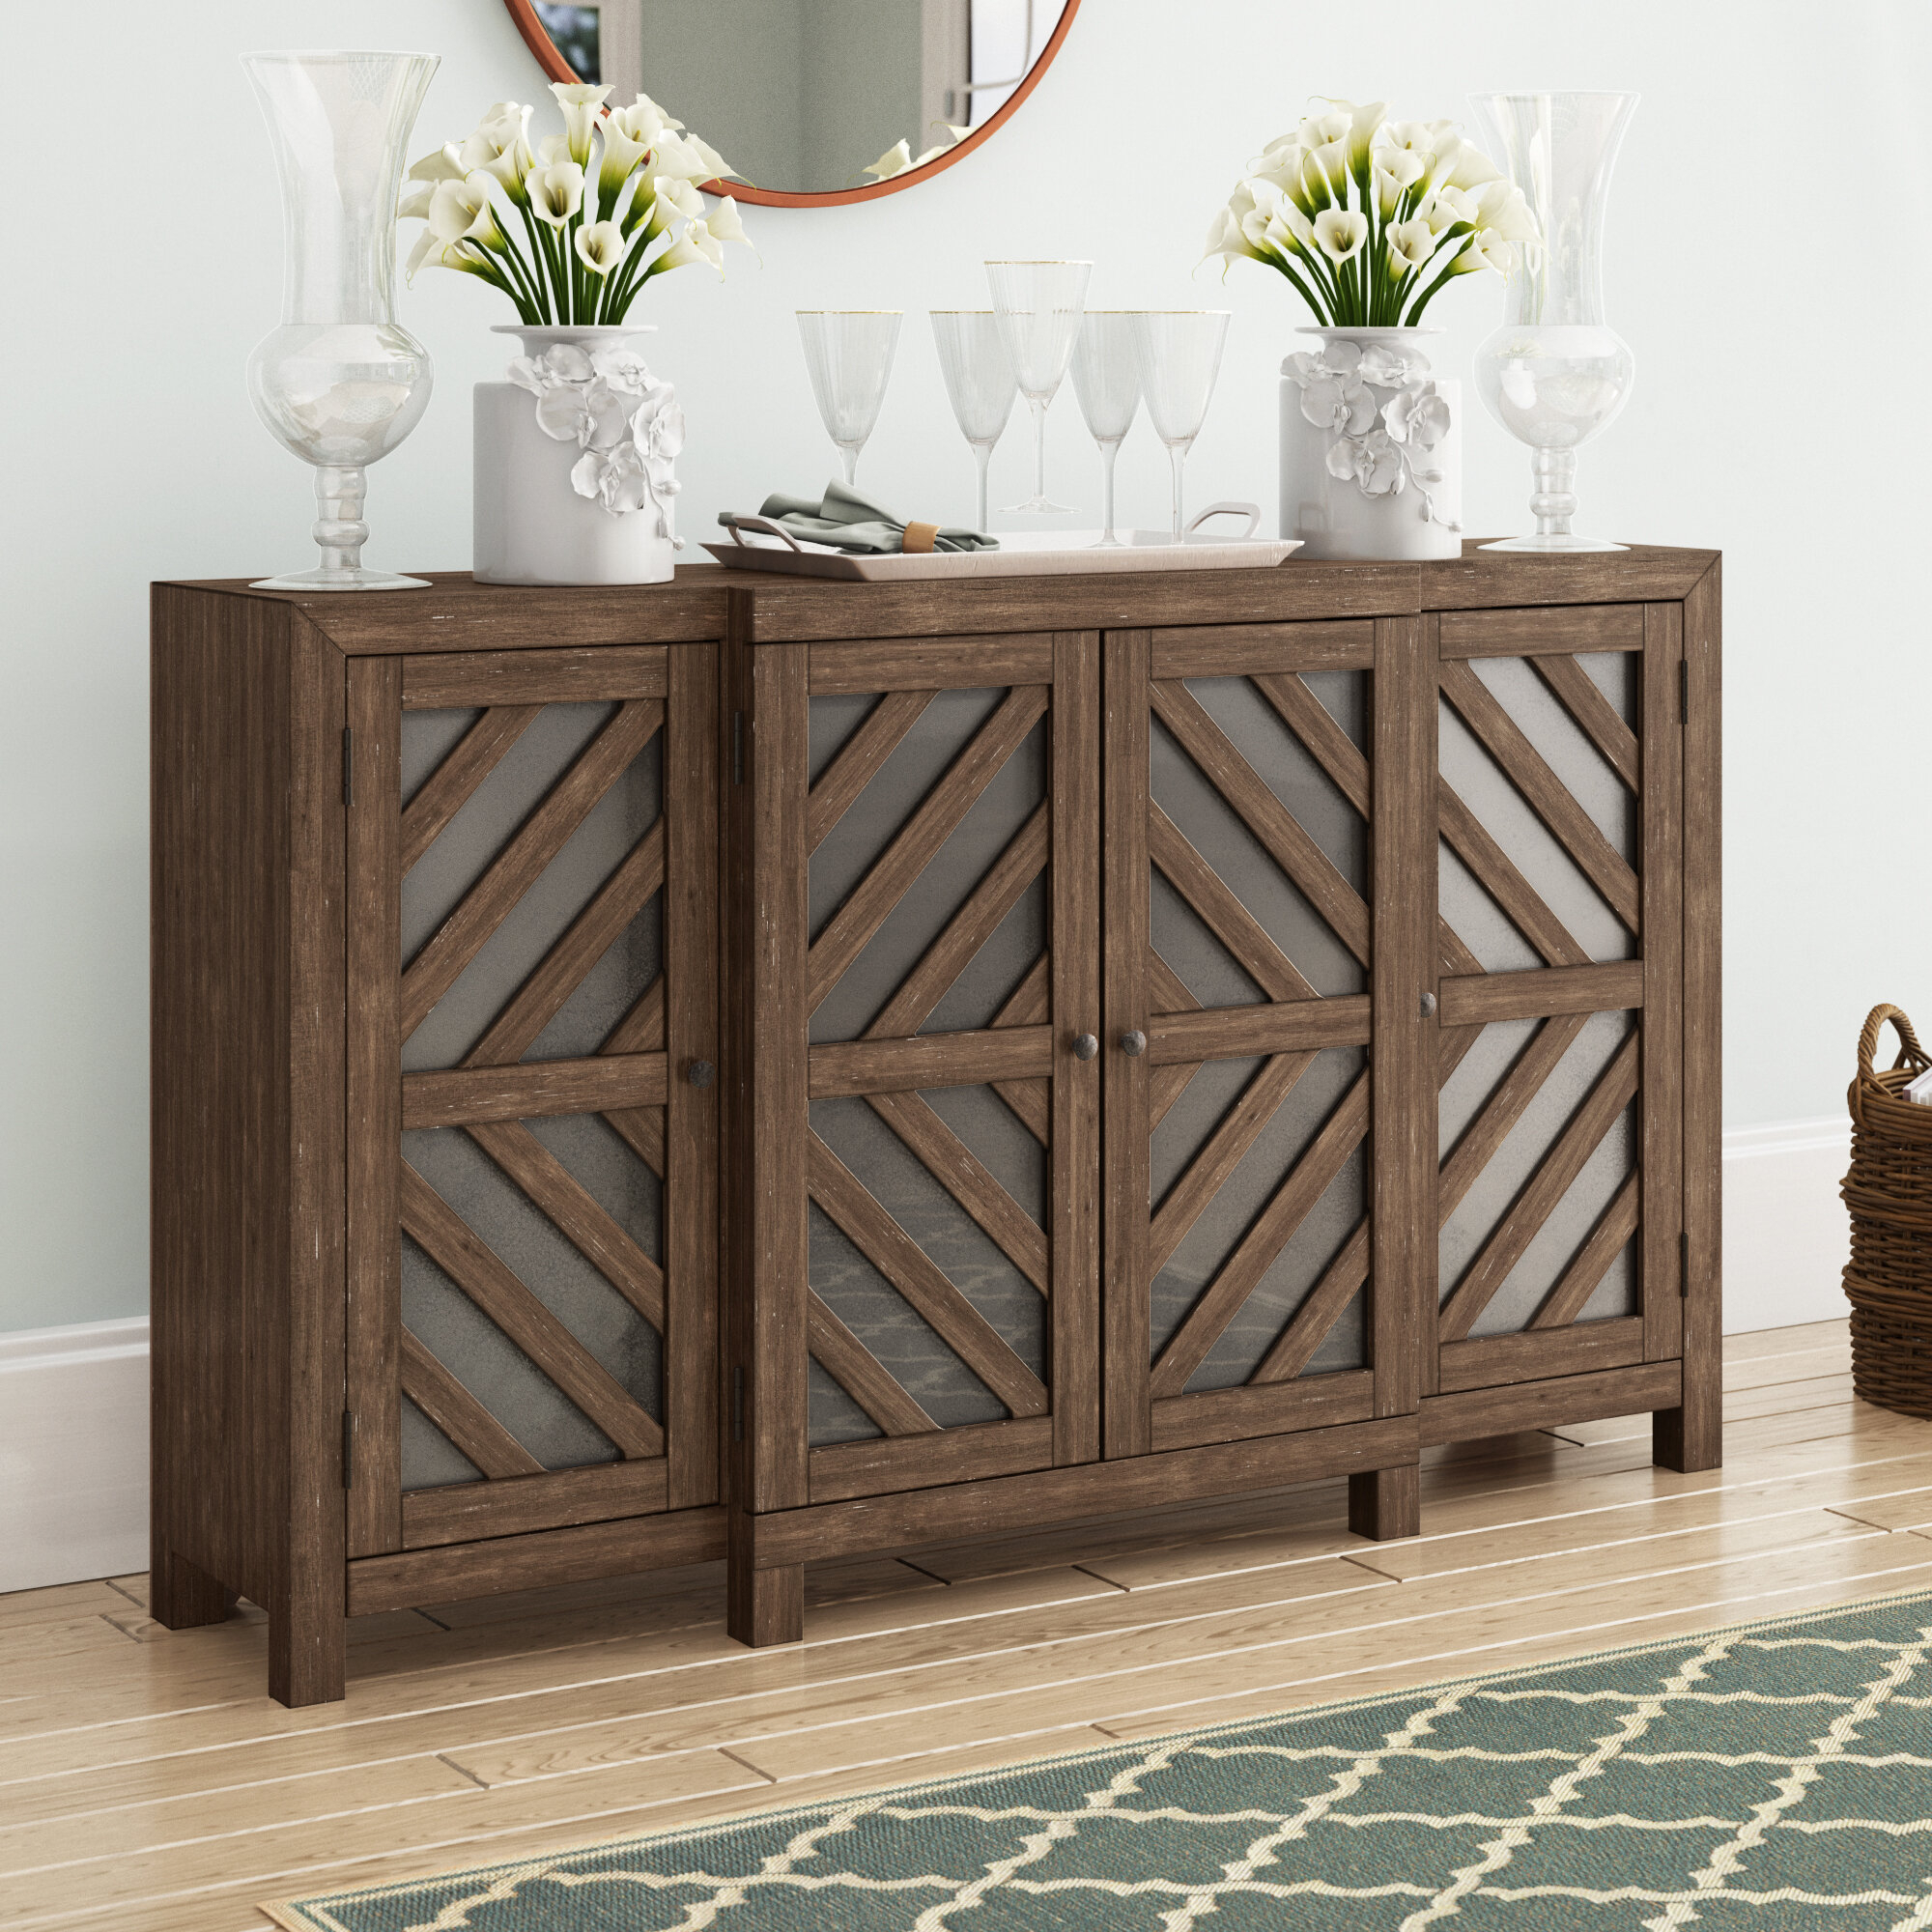 Teal Credenza | Wayfair intended for Colorful Leaves Credenzas (Image 27 of 30)